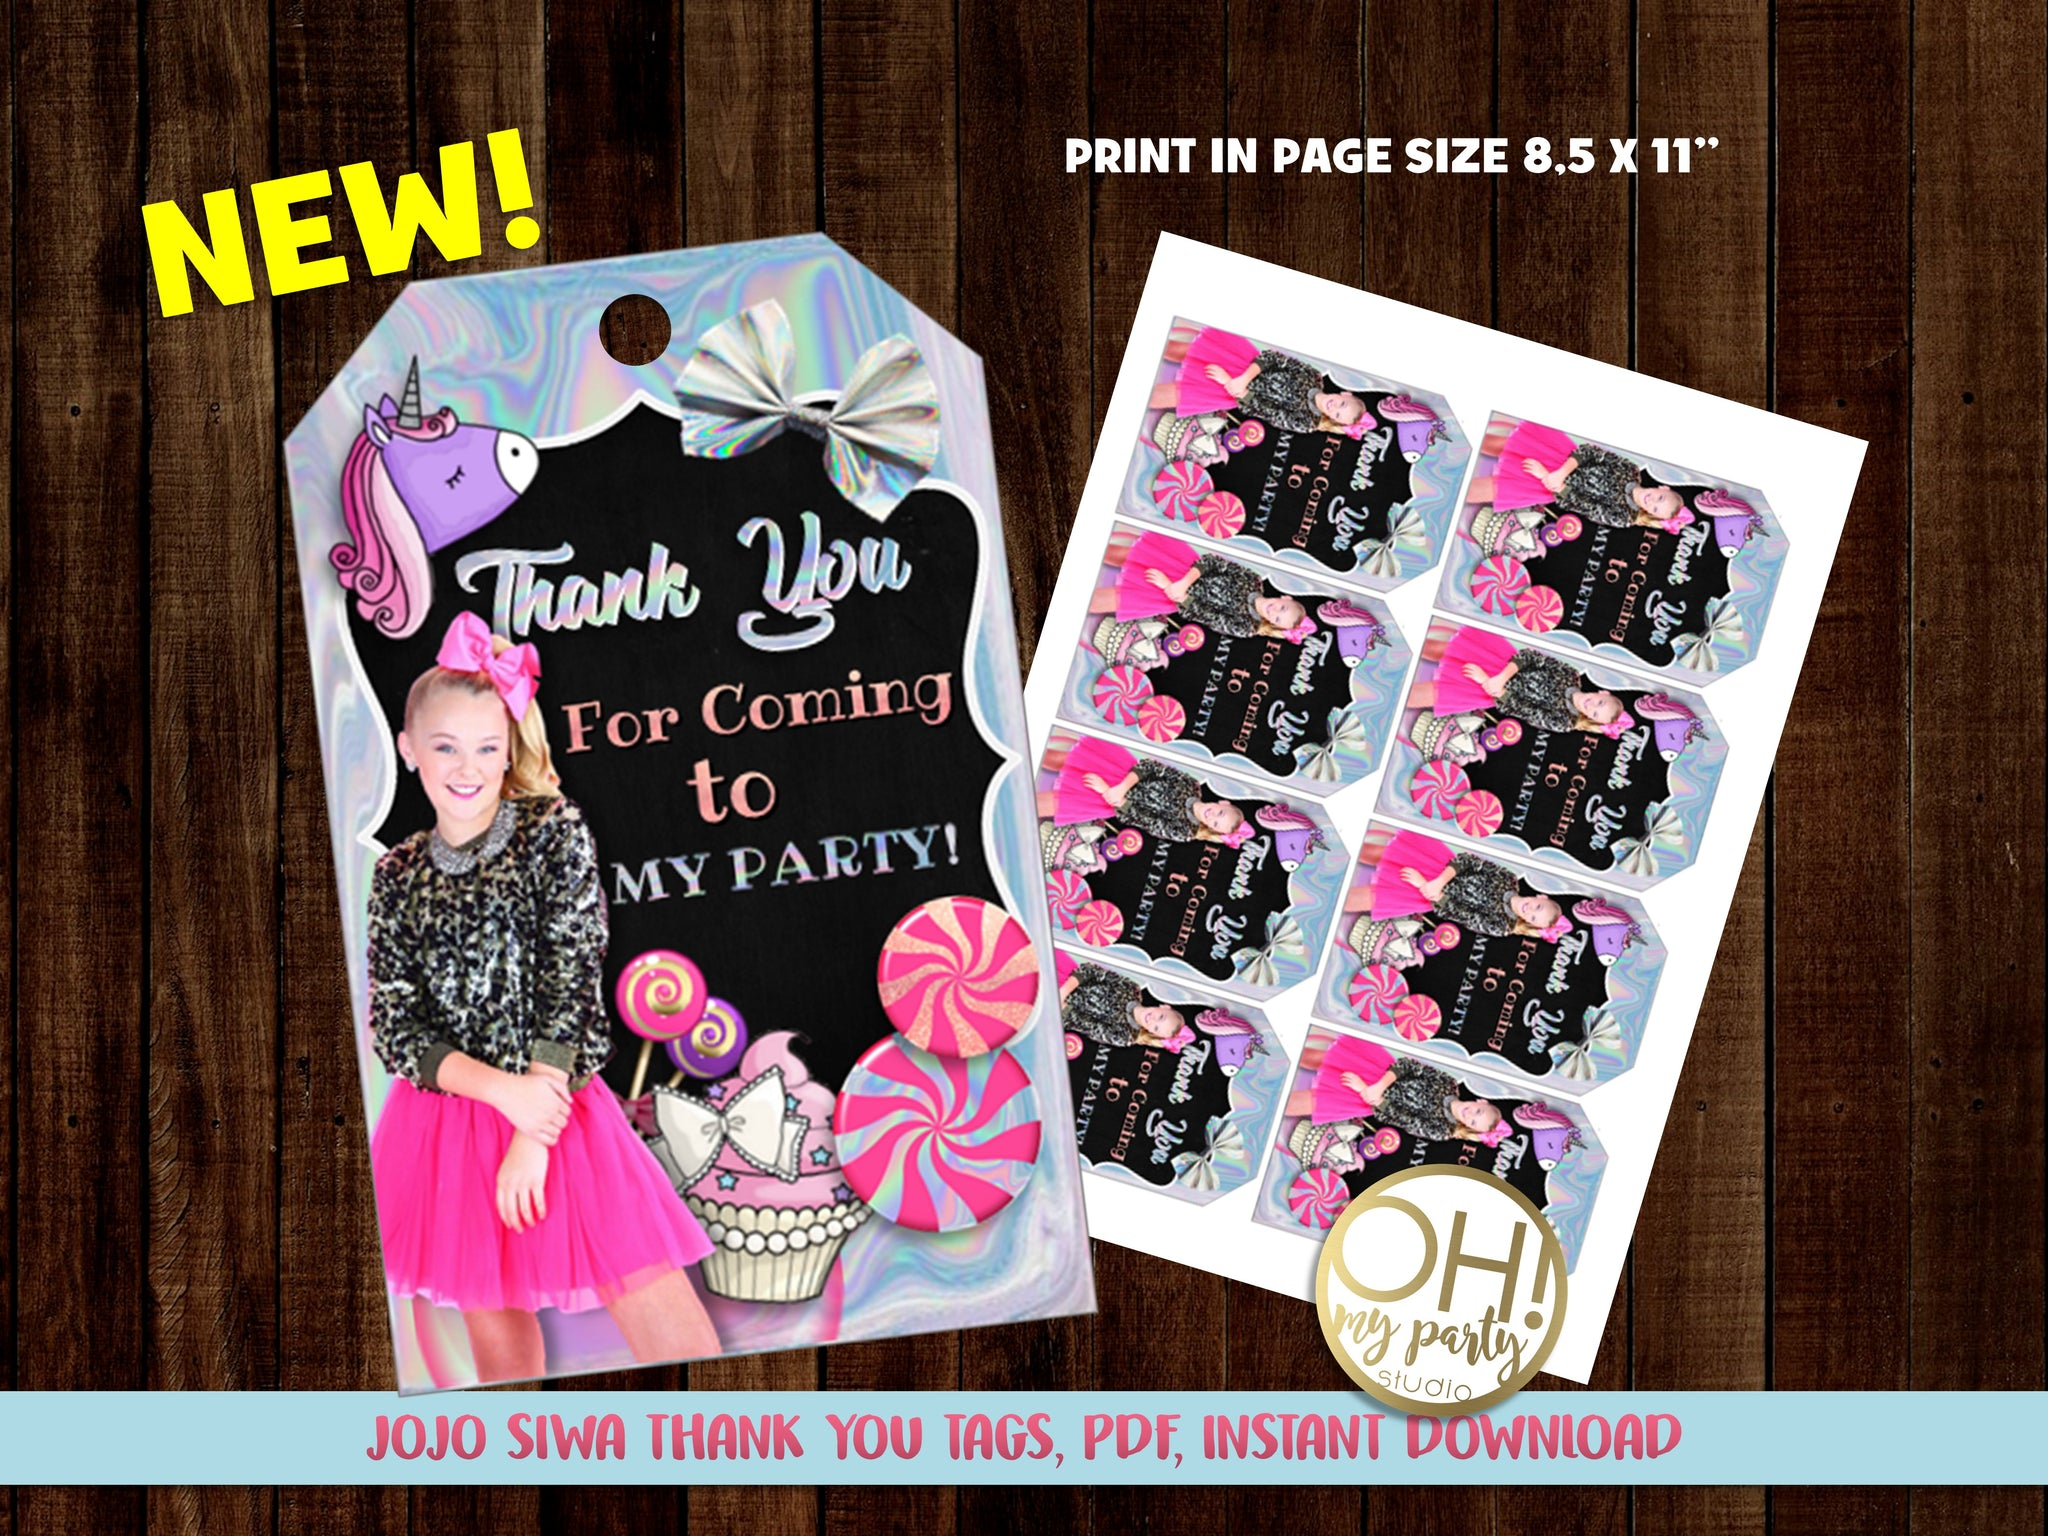 JOJO SIWA PARTY PRINTABLES, JOJO SIWA DECORATIONS, JOJO SIWA THANK YOU TAGS, JOJO SIWA BANNER, JOJO SIWA CUPCAKES, JOJO SIWA CENTERPIECES, JOJO SIWA CAKE TOPPER, JOJO SIWA PARTY THEME, JOJO SIWA PARTY IDEAS, JOJO SIWA BIRTHDAY,JOJO SIWA INVITATION, JOJO SIWA BIRTHDAY INVITATION, JOJO SIWA INVITATIONS